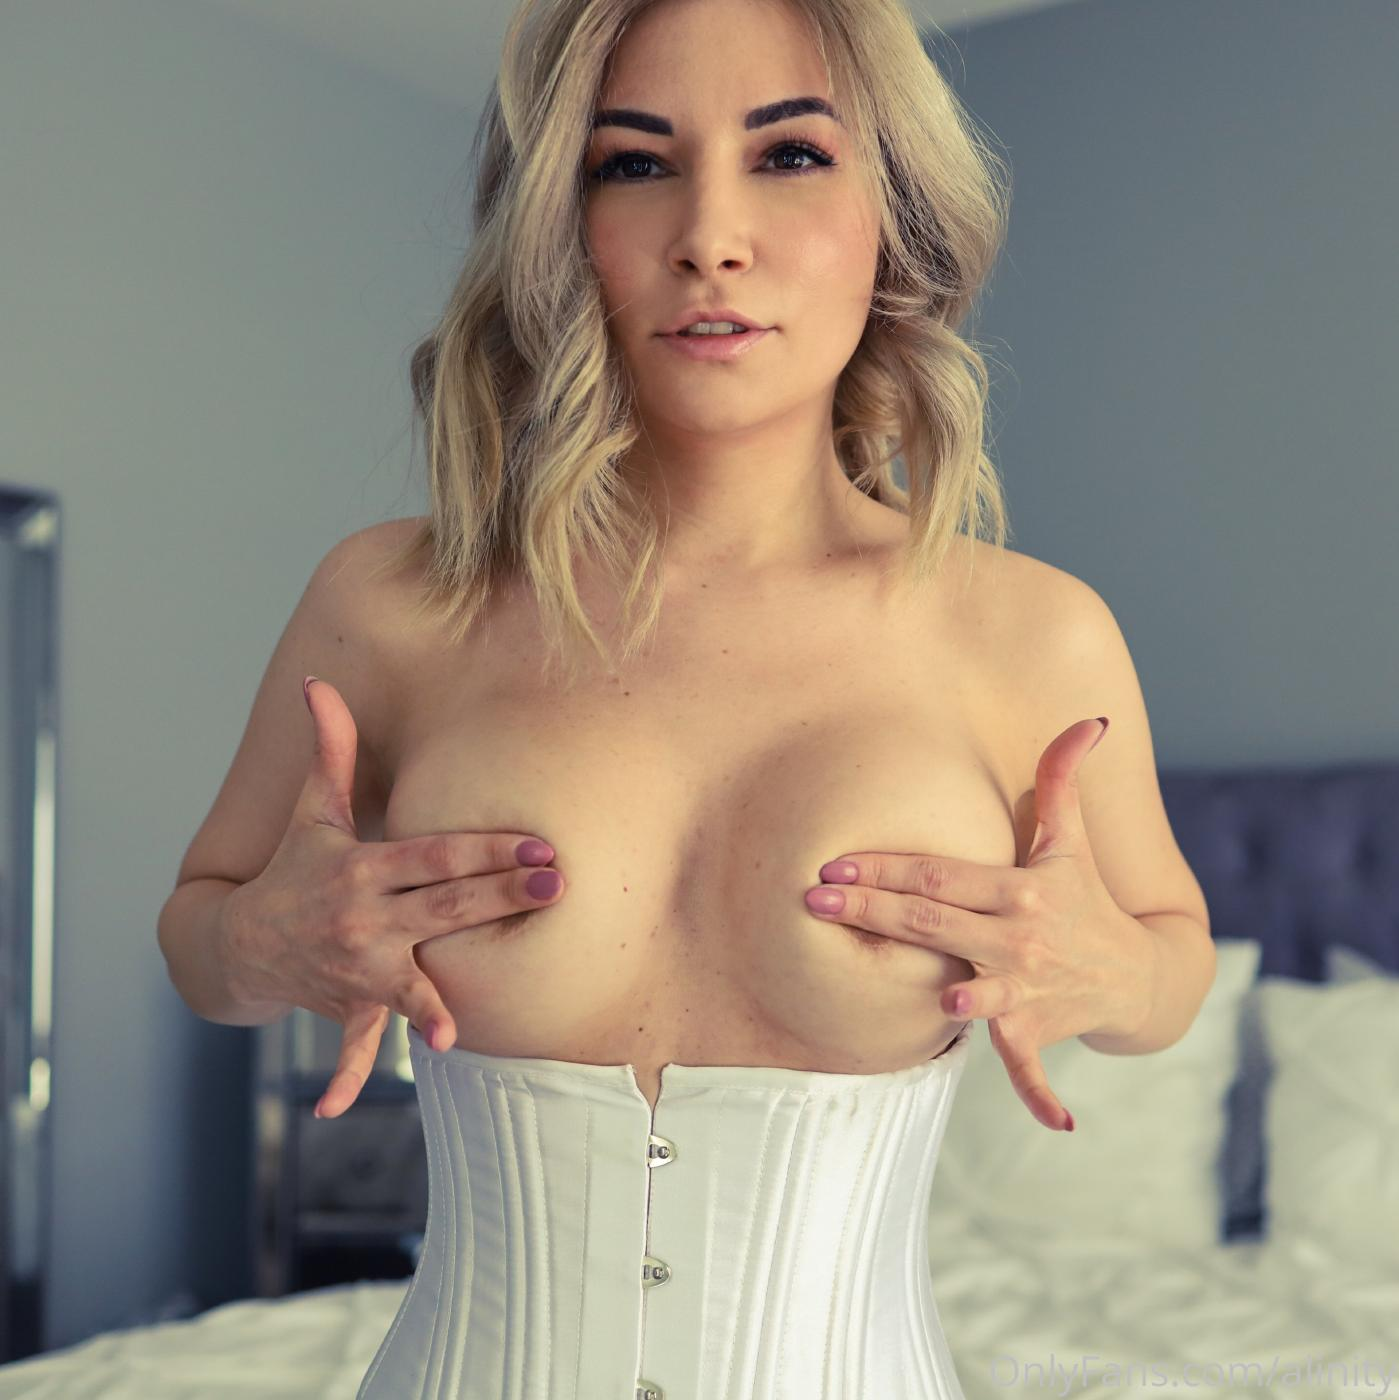 Alinity Nude Corset Onlyfans Set Leaked 0001